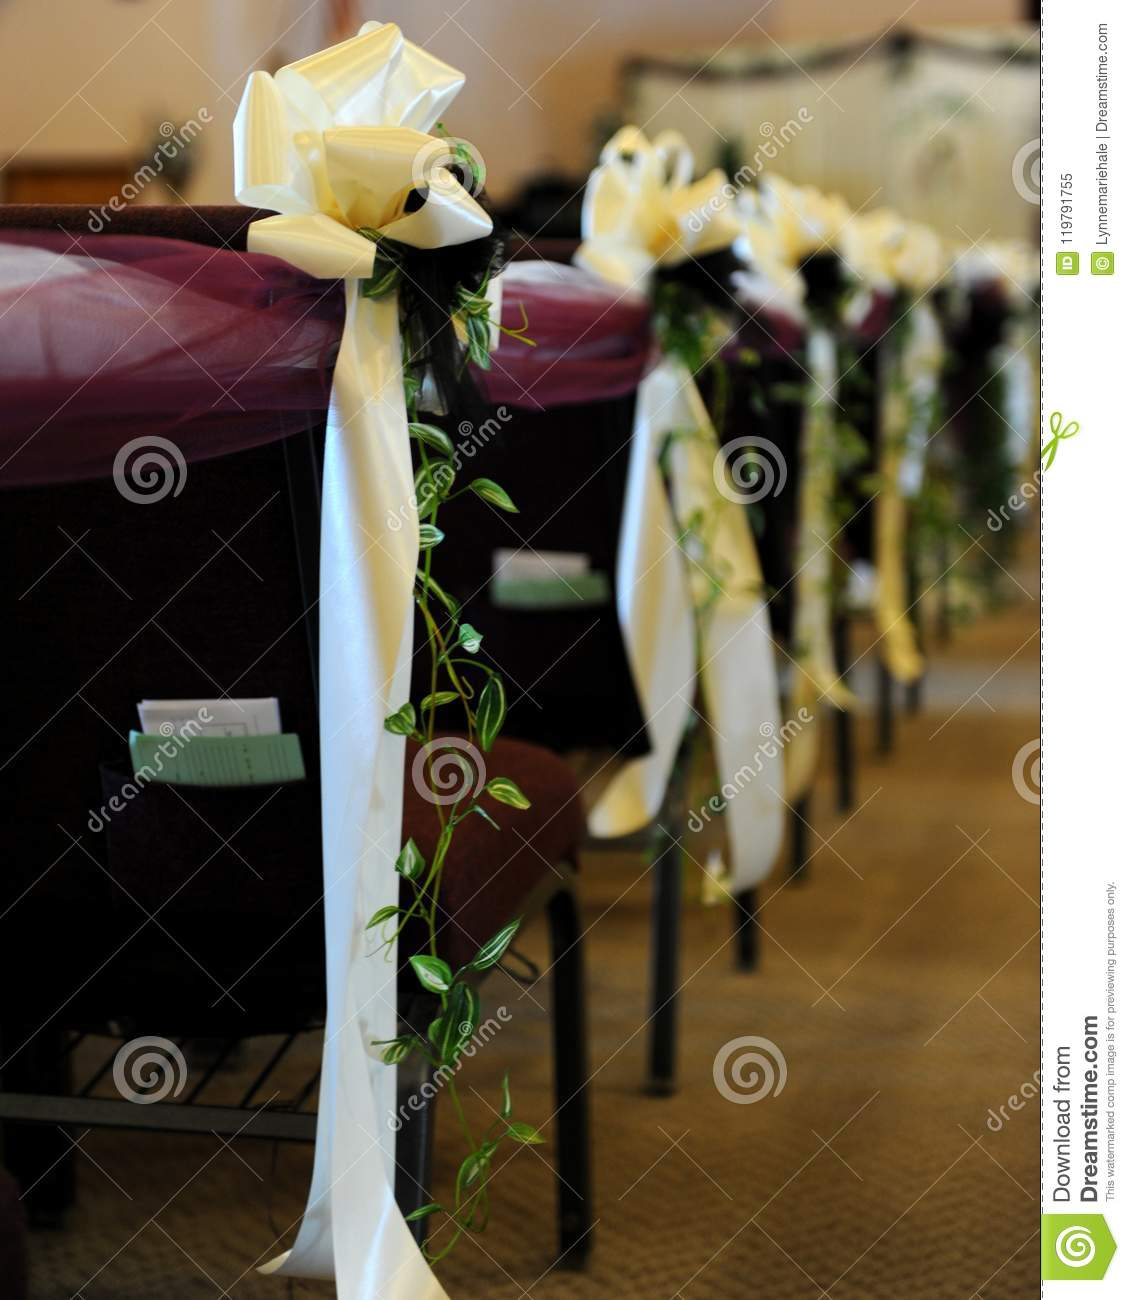 Decorated Church Pews Before Ceremony Stock Image - Image of ...